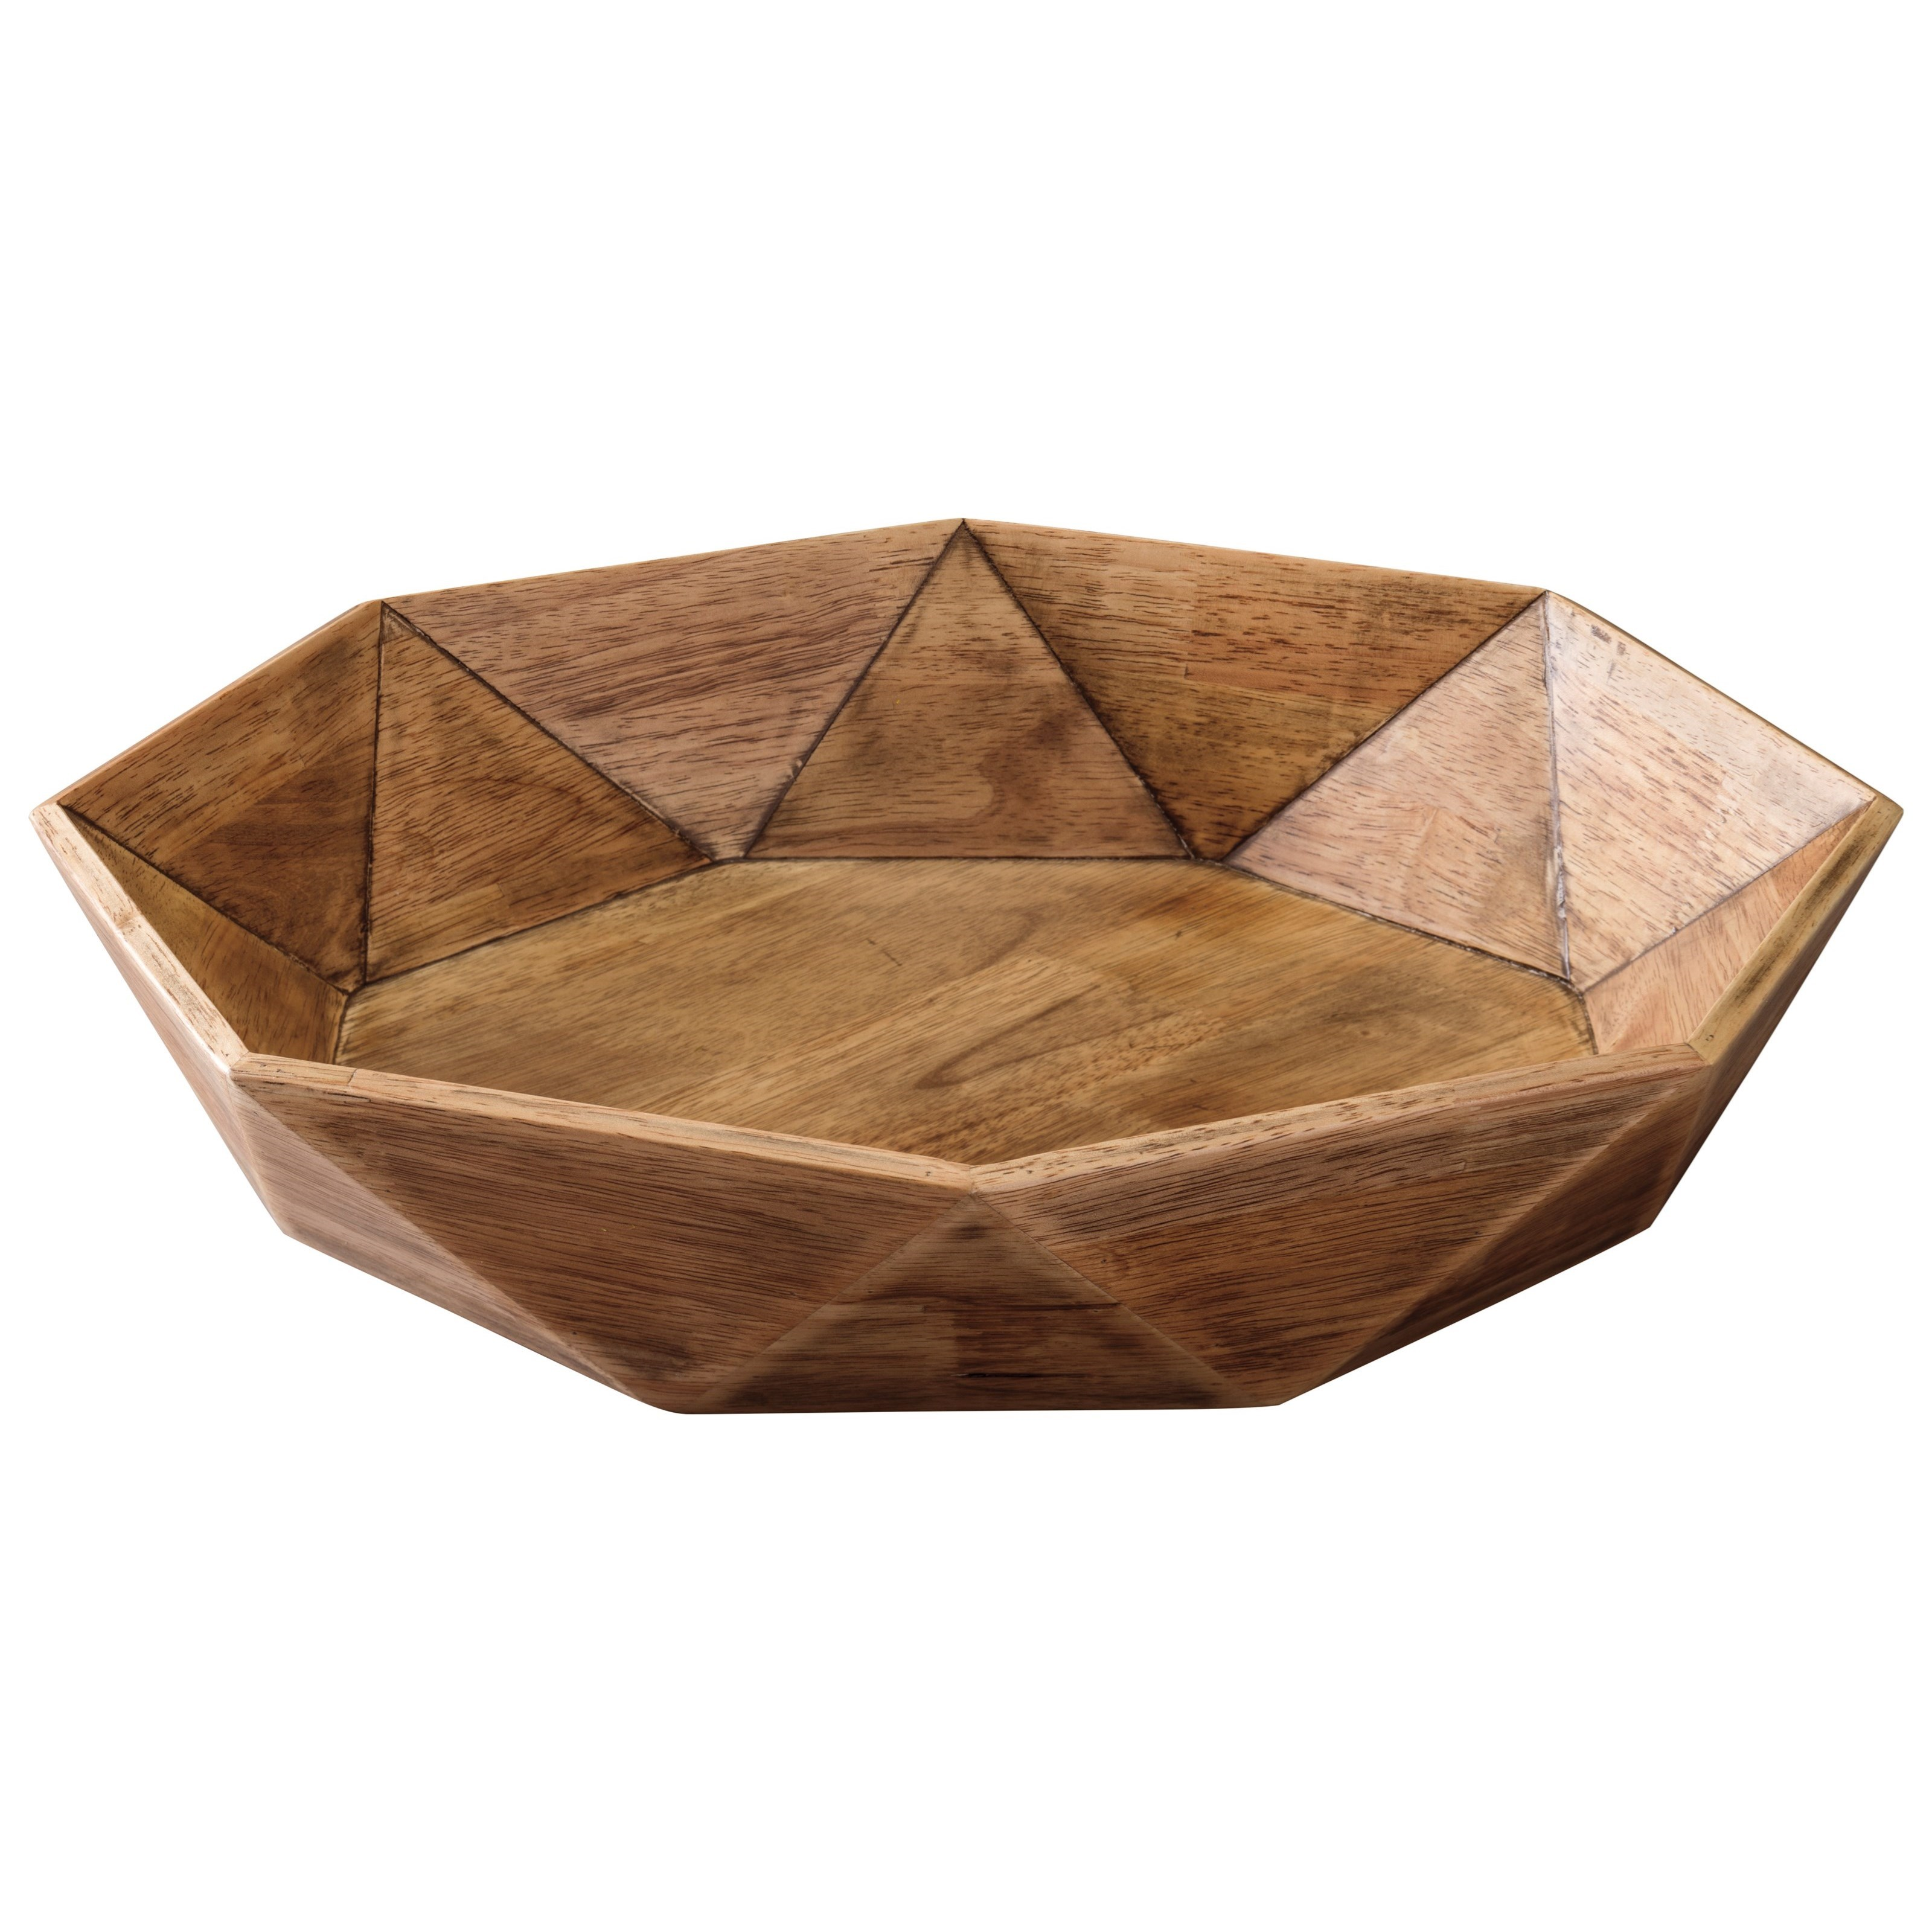 Signature Design by Ashley Accents Corin Natural Tray - Item Number: A2000299